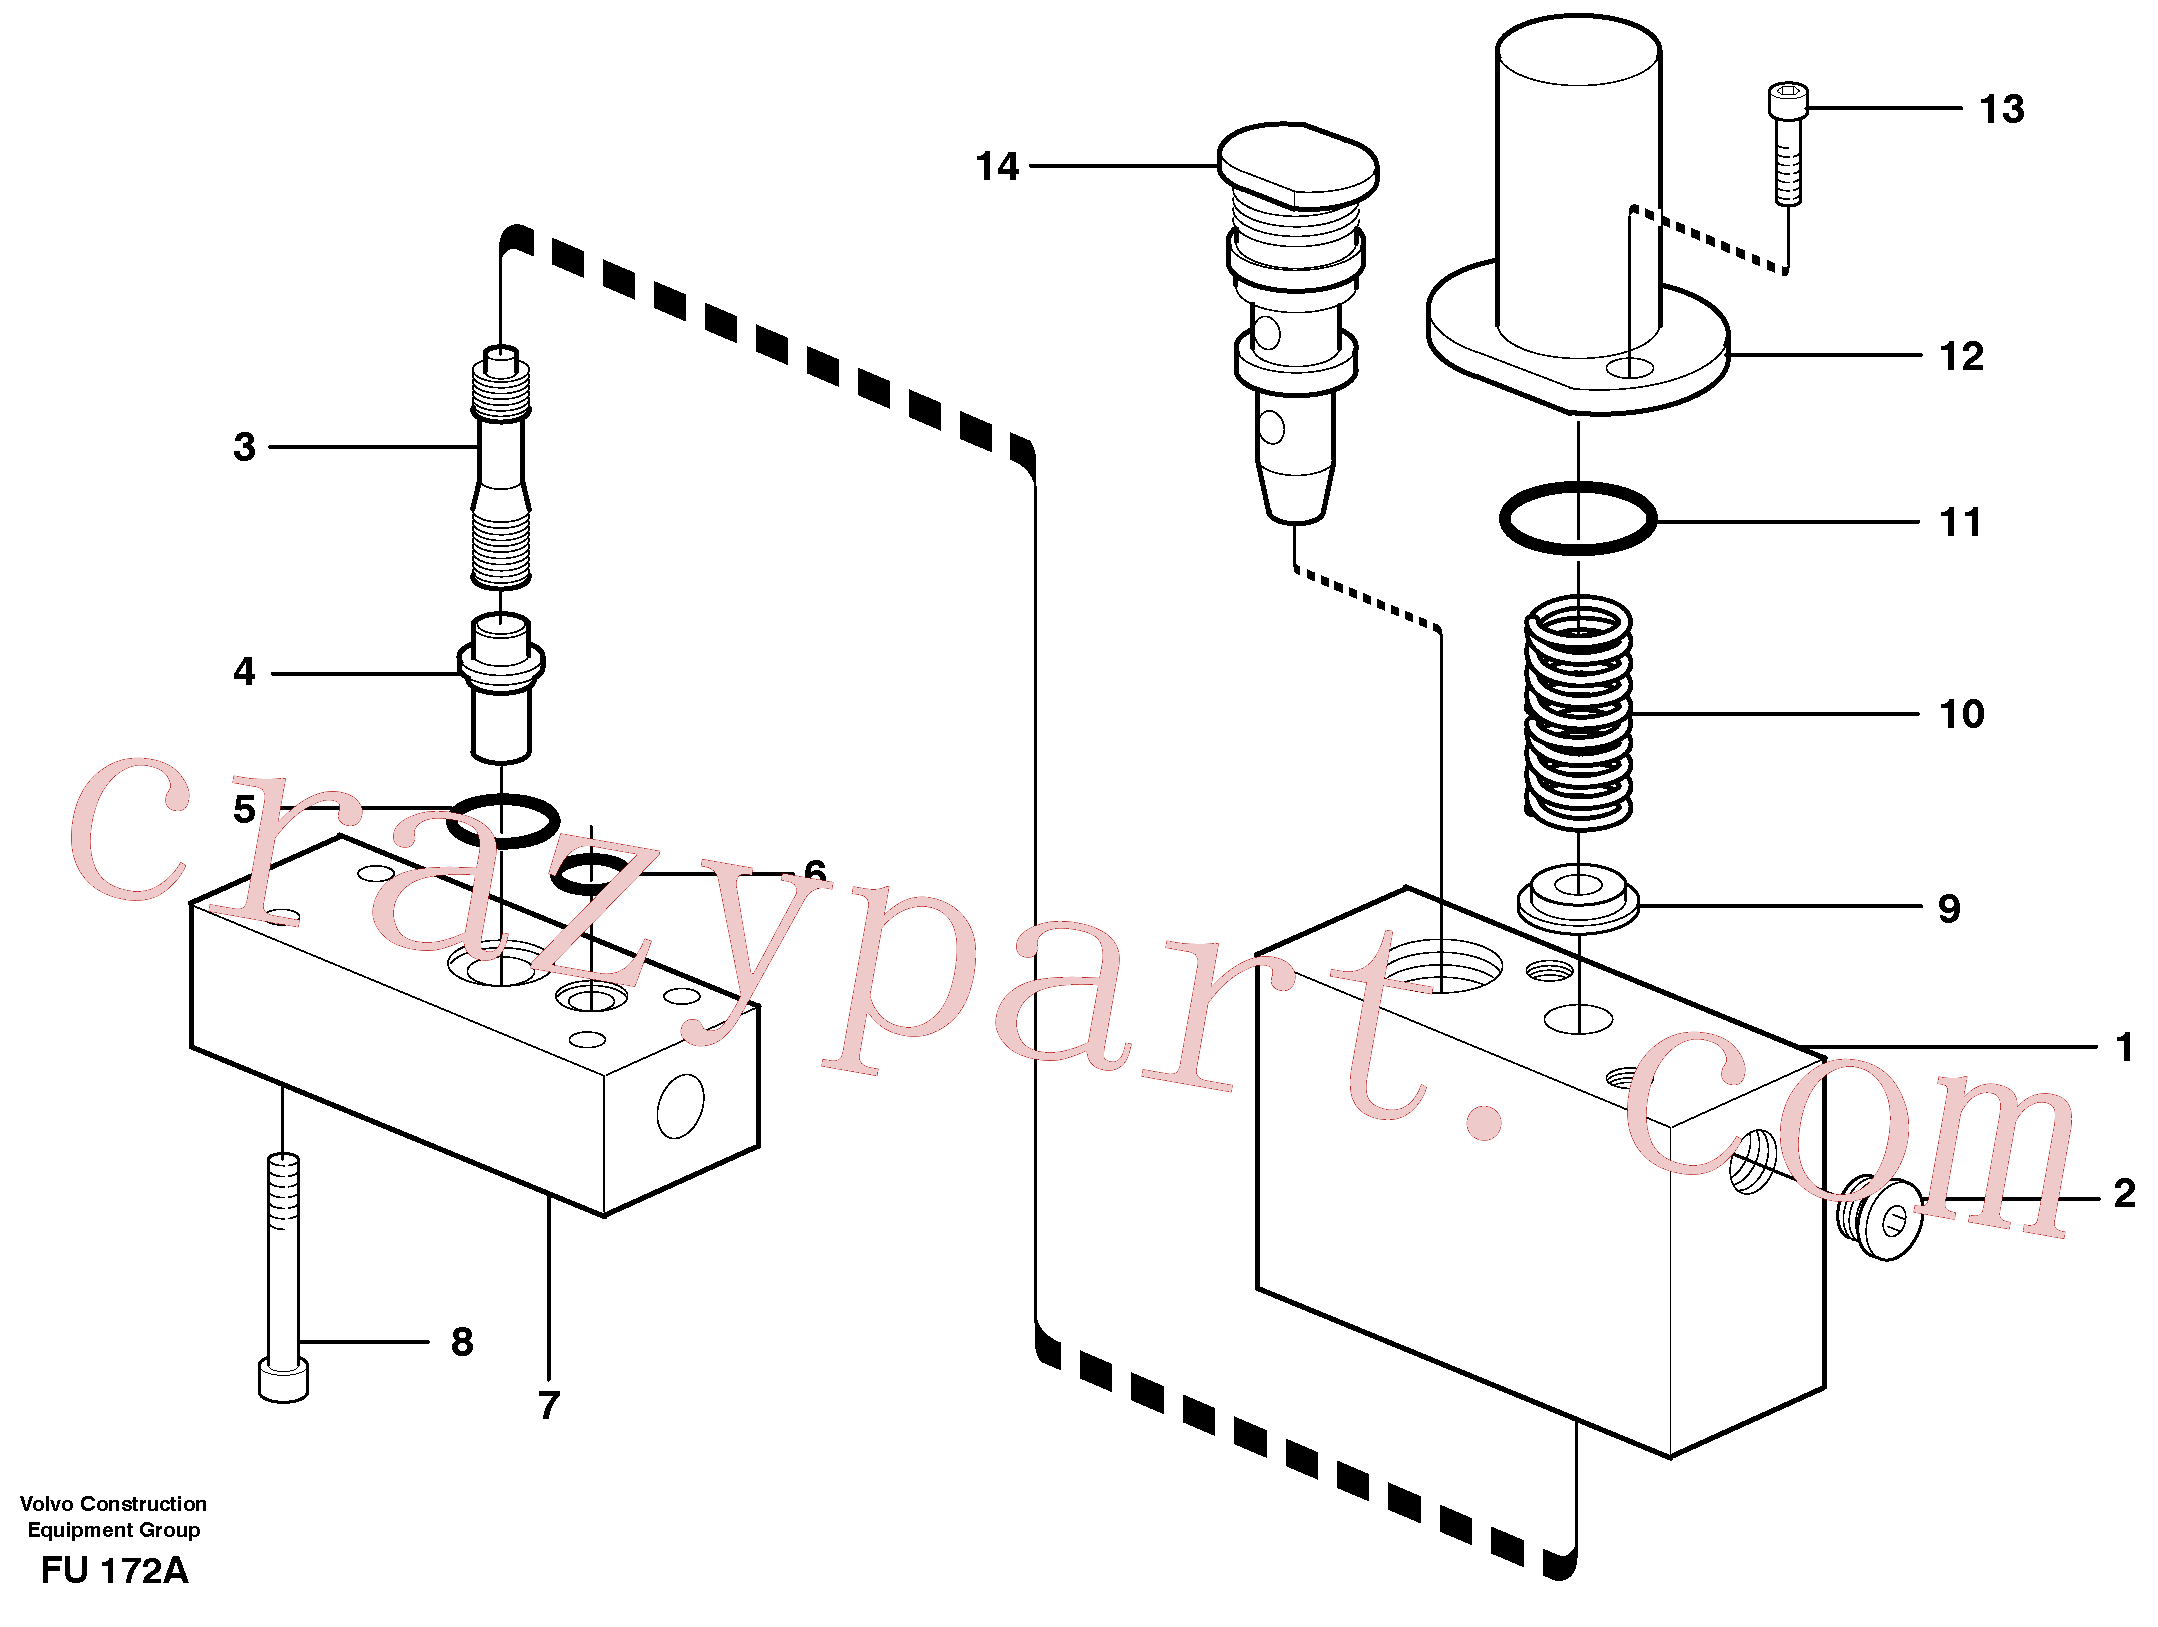 VOE14054983 for Volvo Thermostatic valve(FU172A assembly)